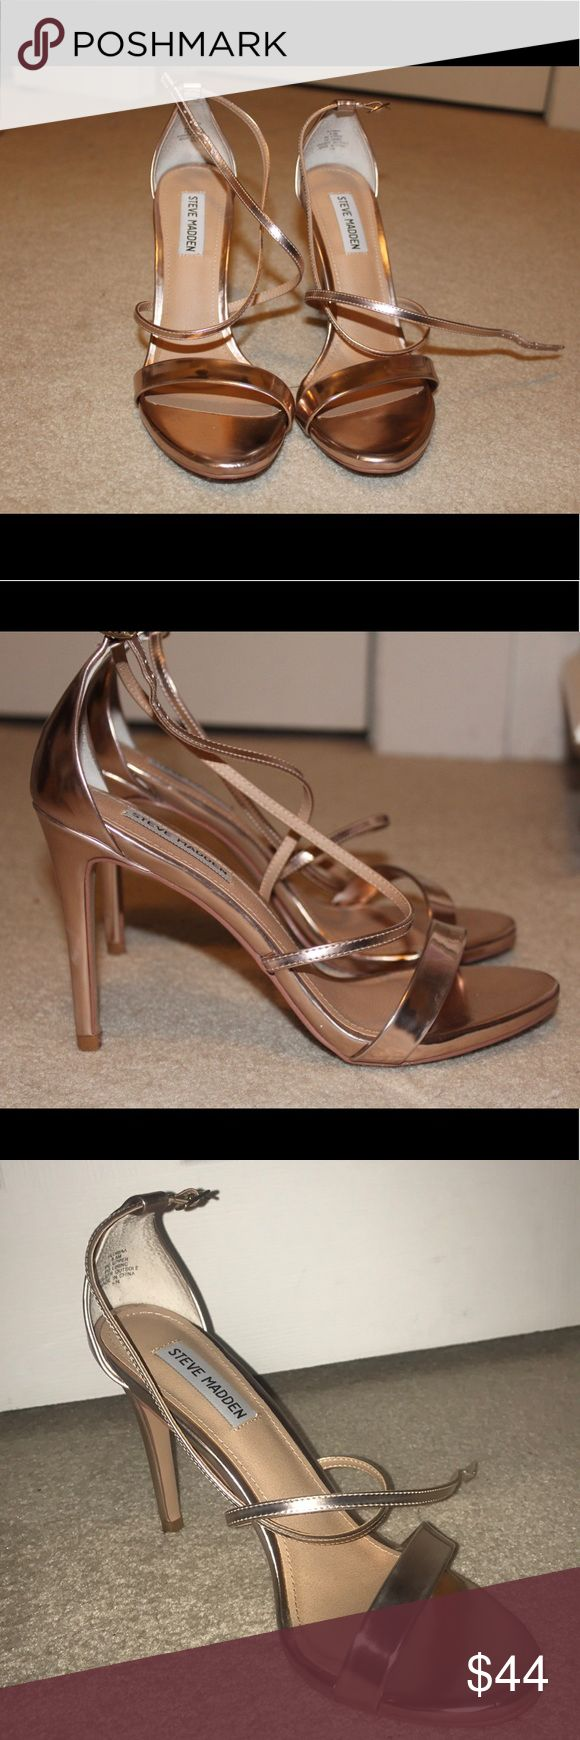 Steve Madden Rose Gold Strapped Heels (almost new) They look really cute on & in good conditions Steve Madden Shoes Heels